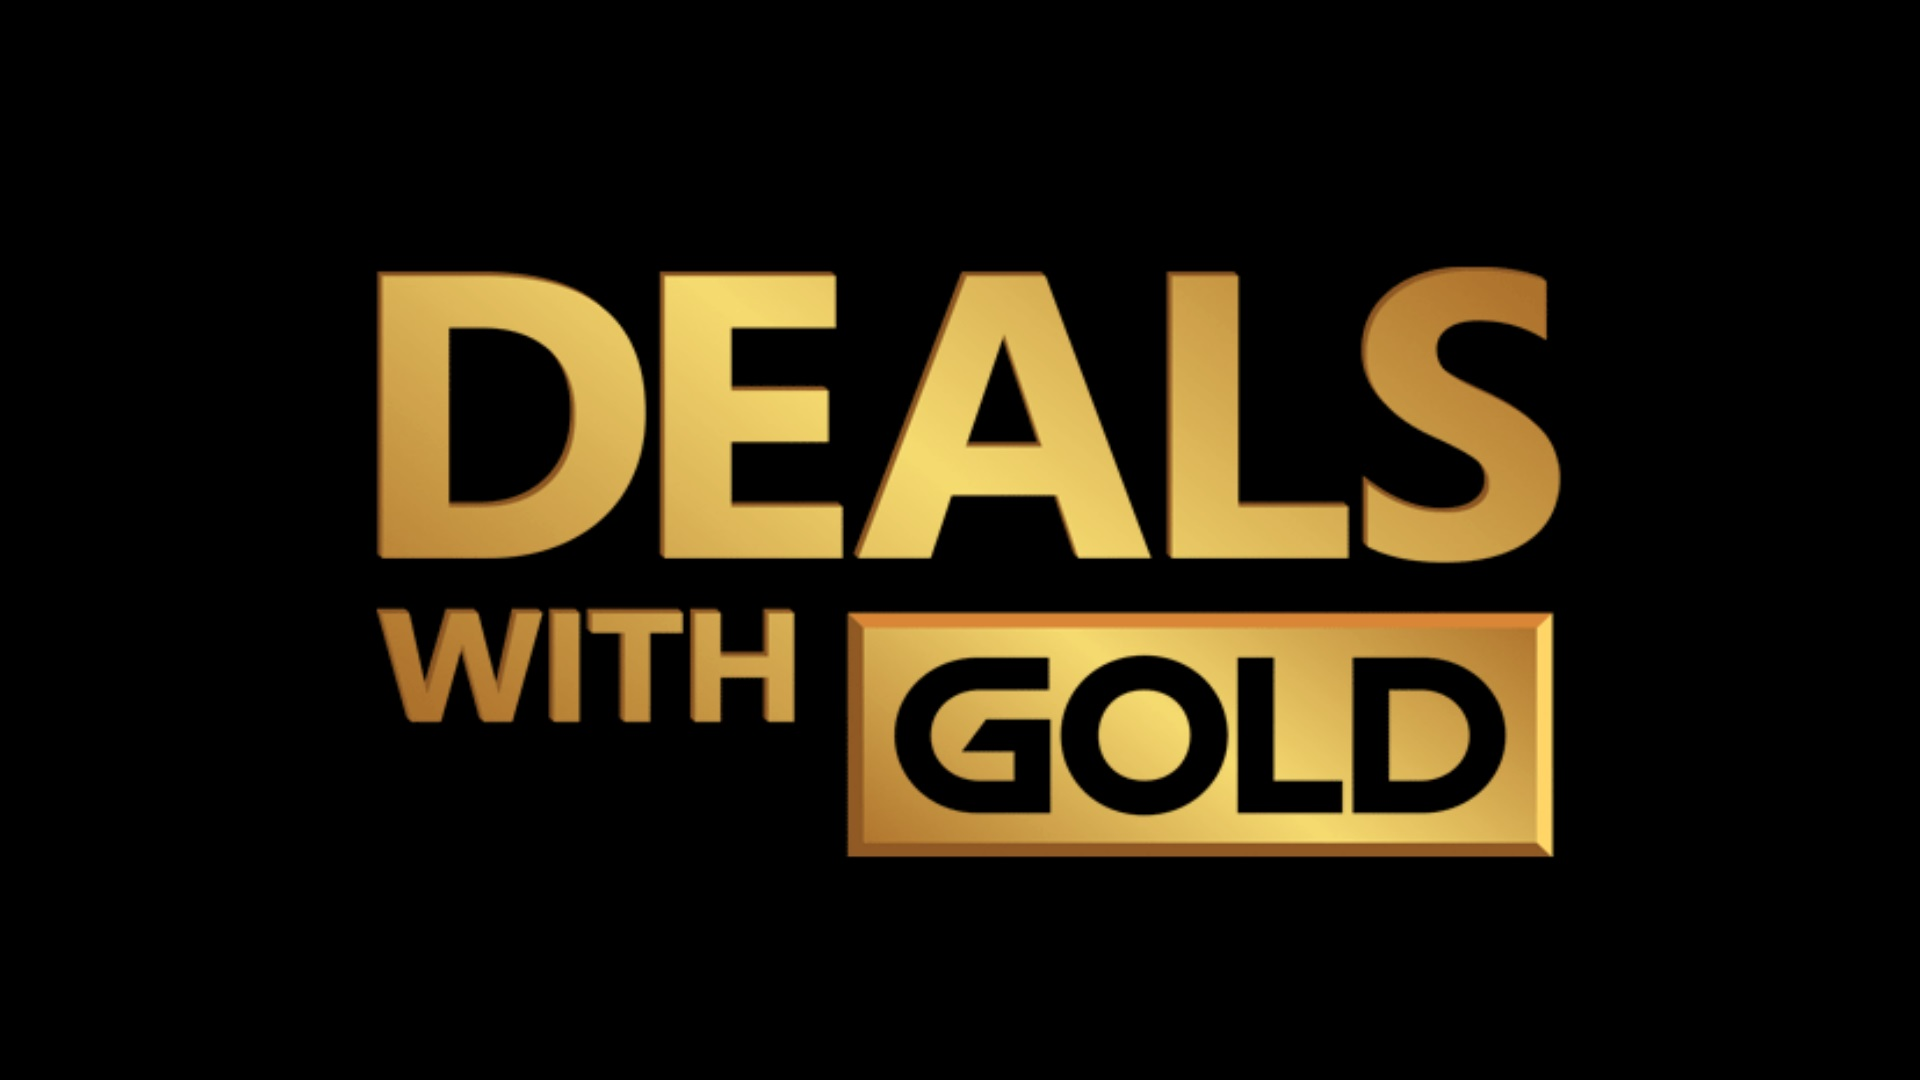 rainbow six siege deals with gold